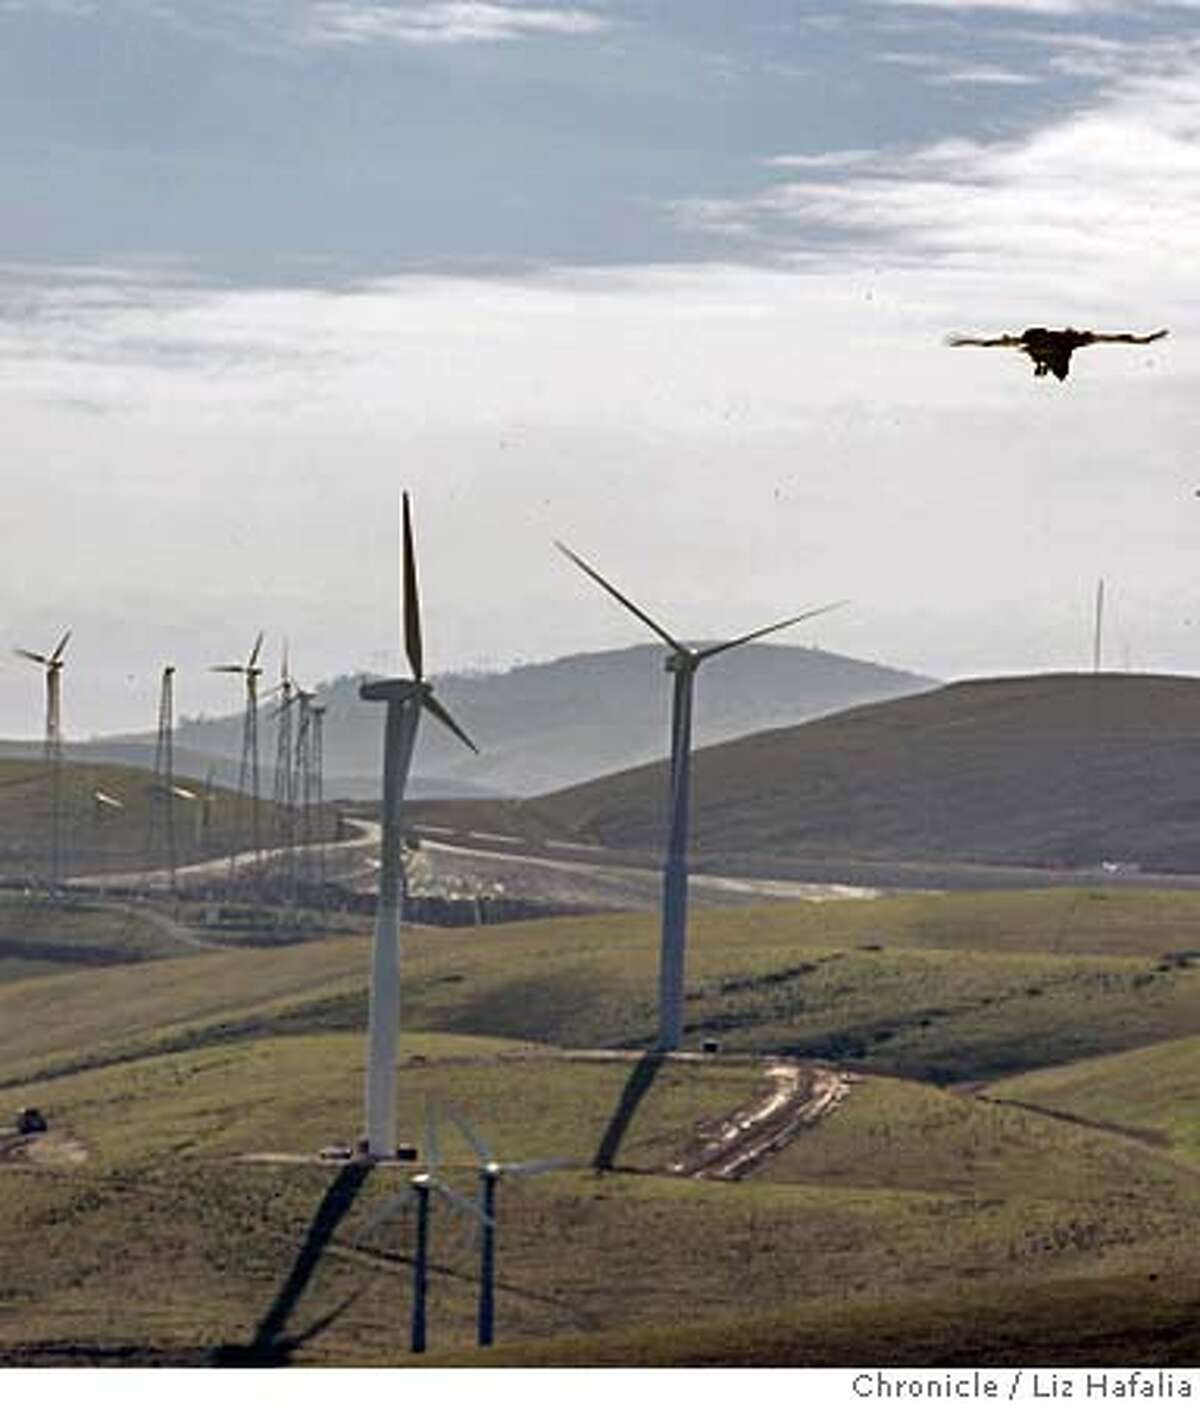 Story is more than 4,000 birds are killed every year at Altamont Pass, and how the wind industry could modify to dramatically reduce deaths. On right is a hawk. There are two new 55 meter turbines in the middle with older ones around them. Shot on 12/6/04 in Byron. LIZ HAFALIA/The Chronicle